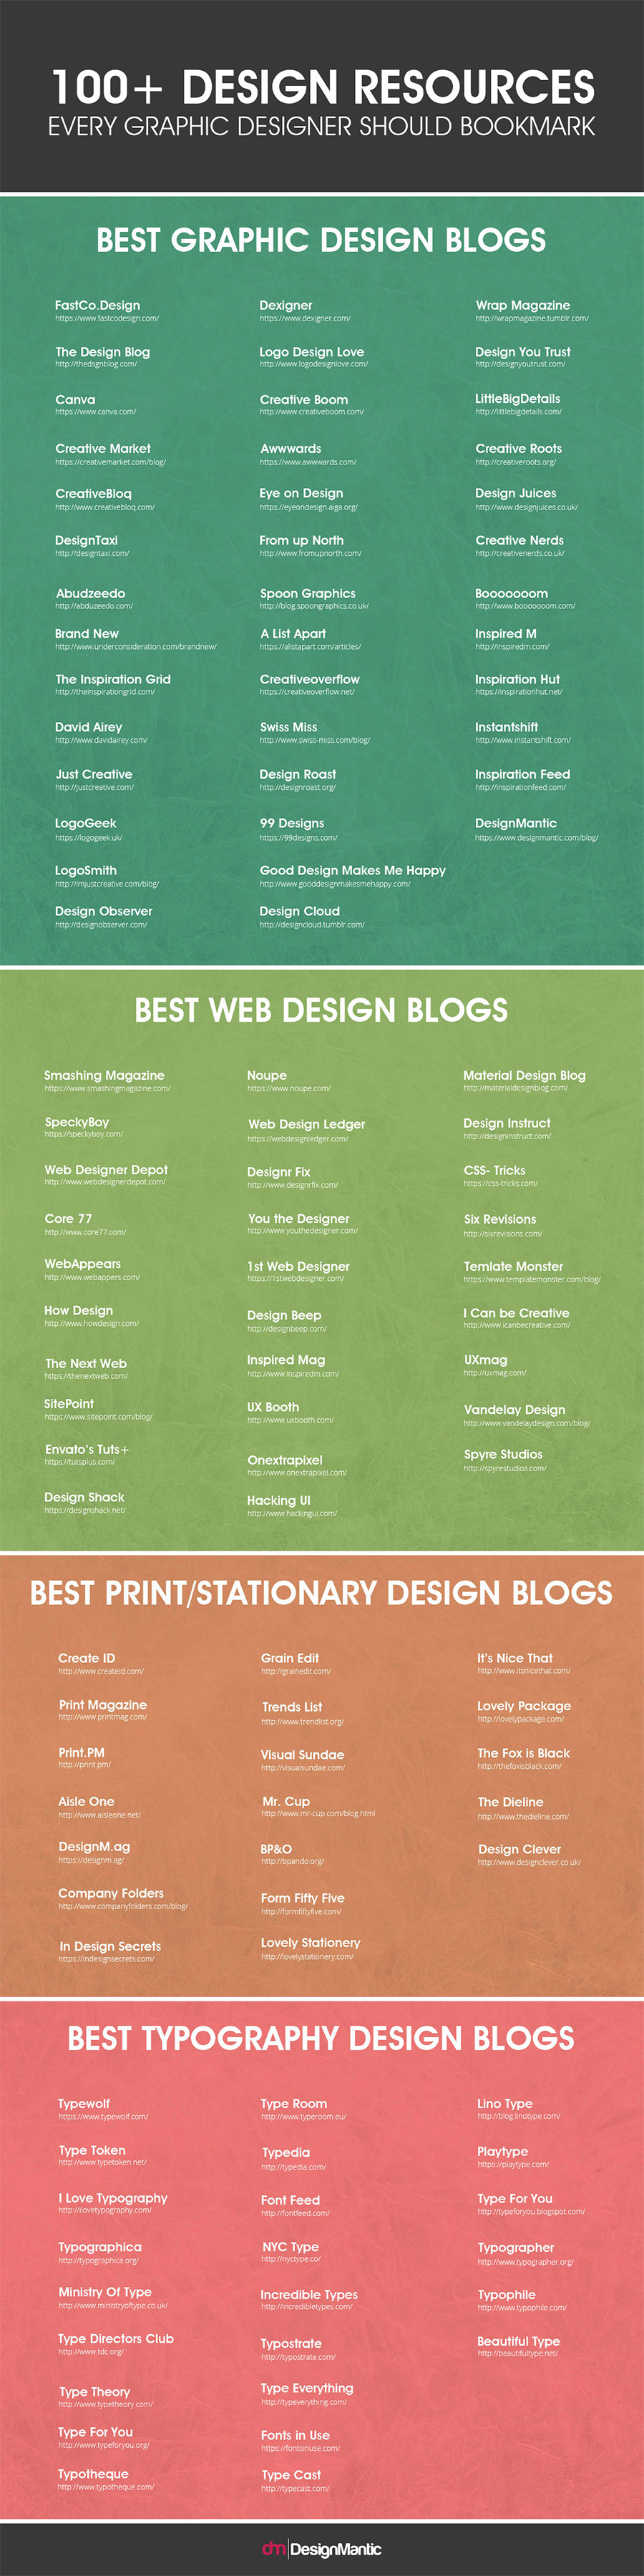 100+ Design Blogs You Should Follow For Design Inspiration